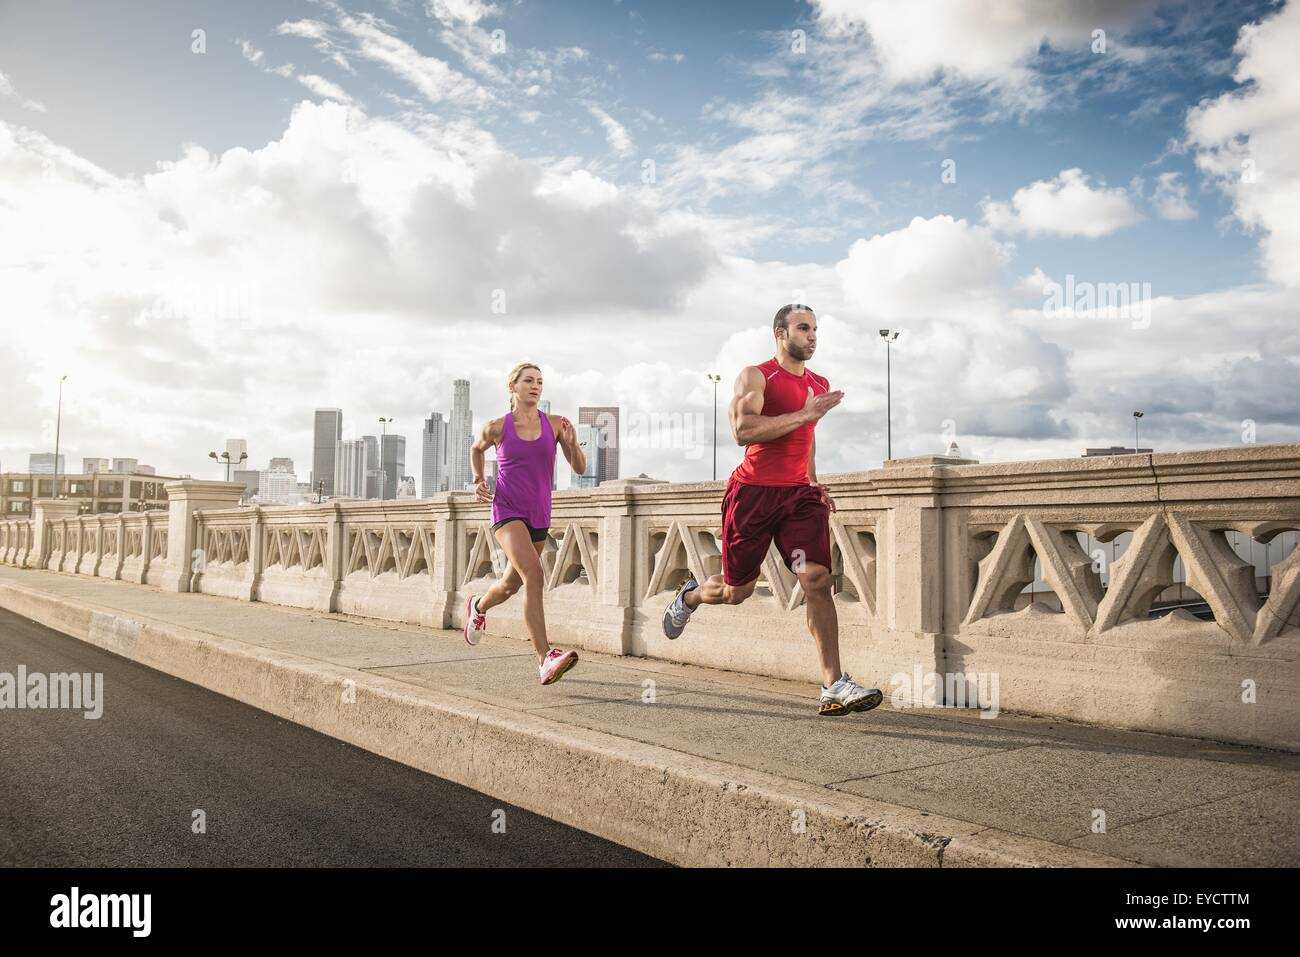 Male and female runners running across bridge, Los Angeles, California, USA - Stock Image